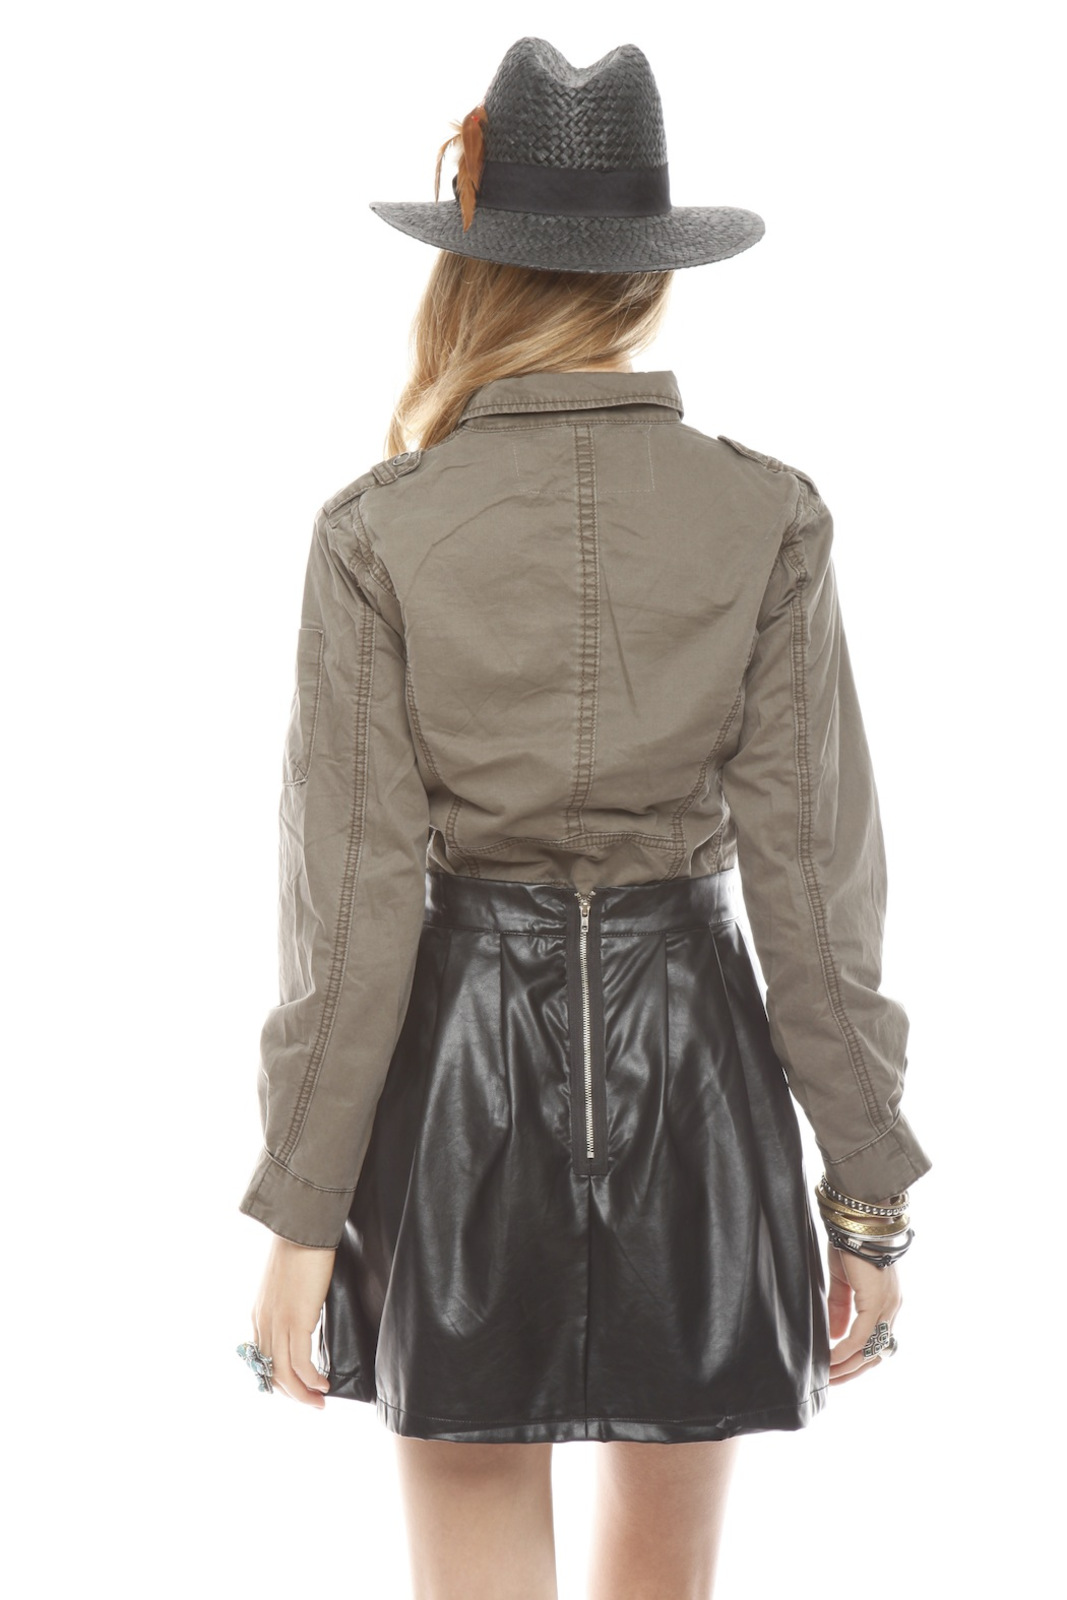 BlankNYC Snap-Front Military Shirt - Back Cropped Image